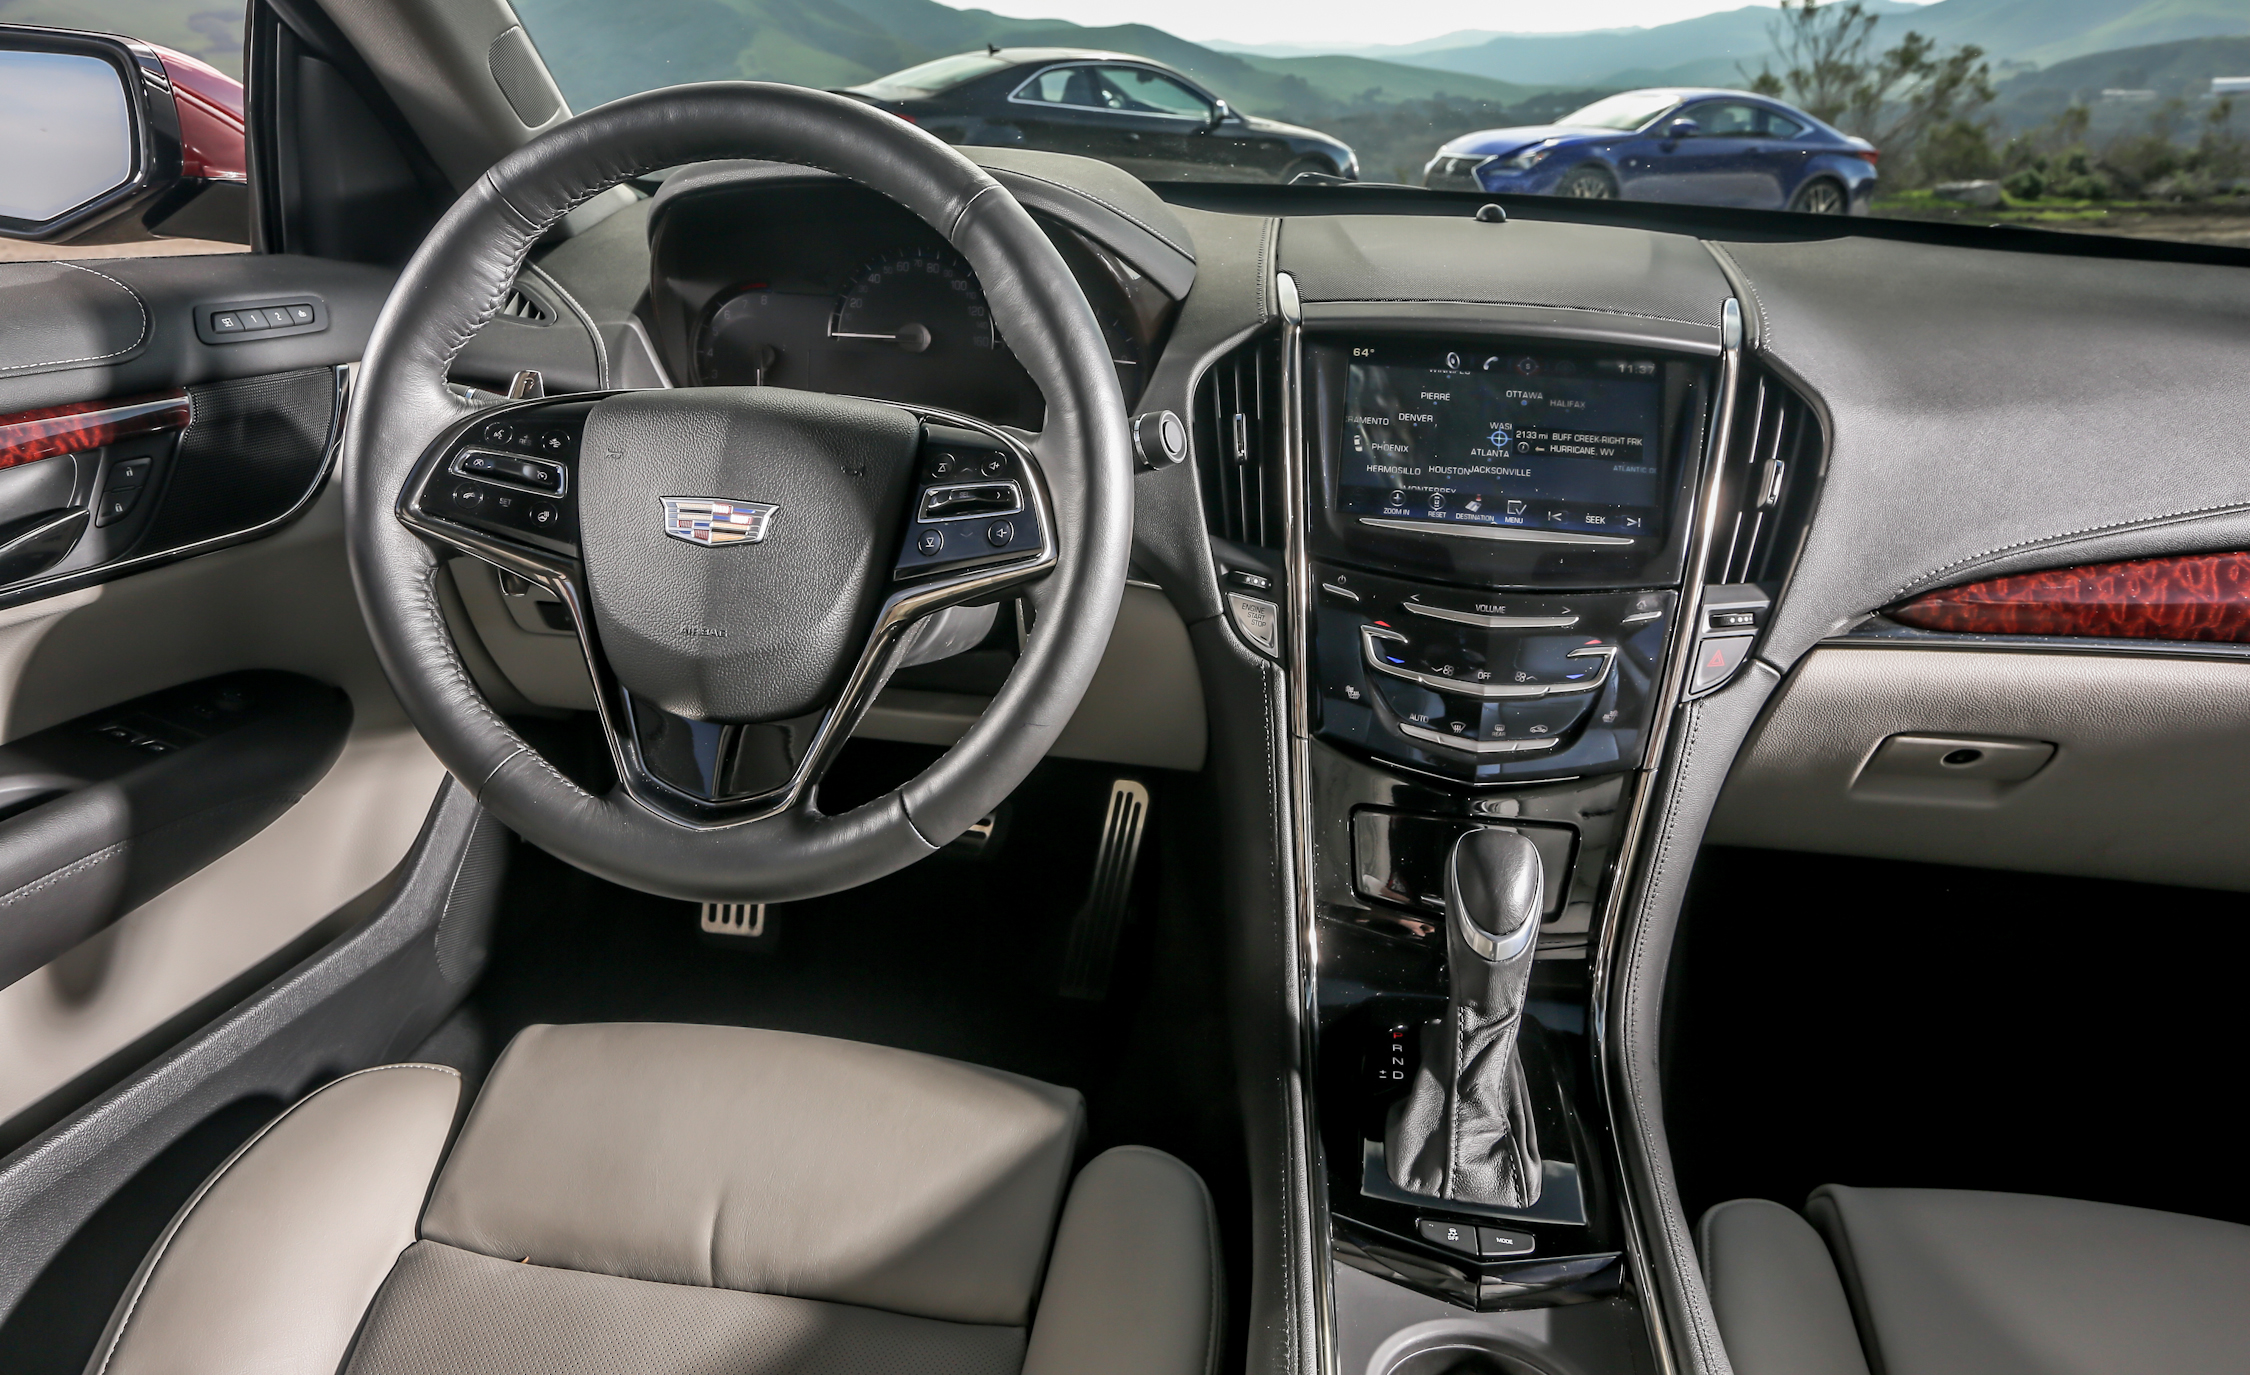 2015 Cadillac ATS Coupe 3.6 Cockpit and Dashboard